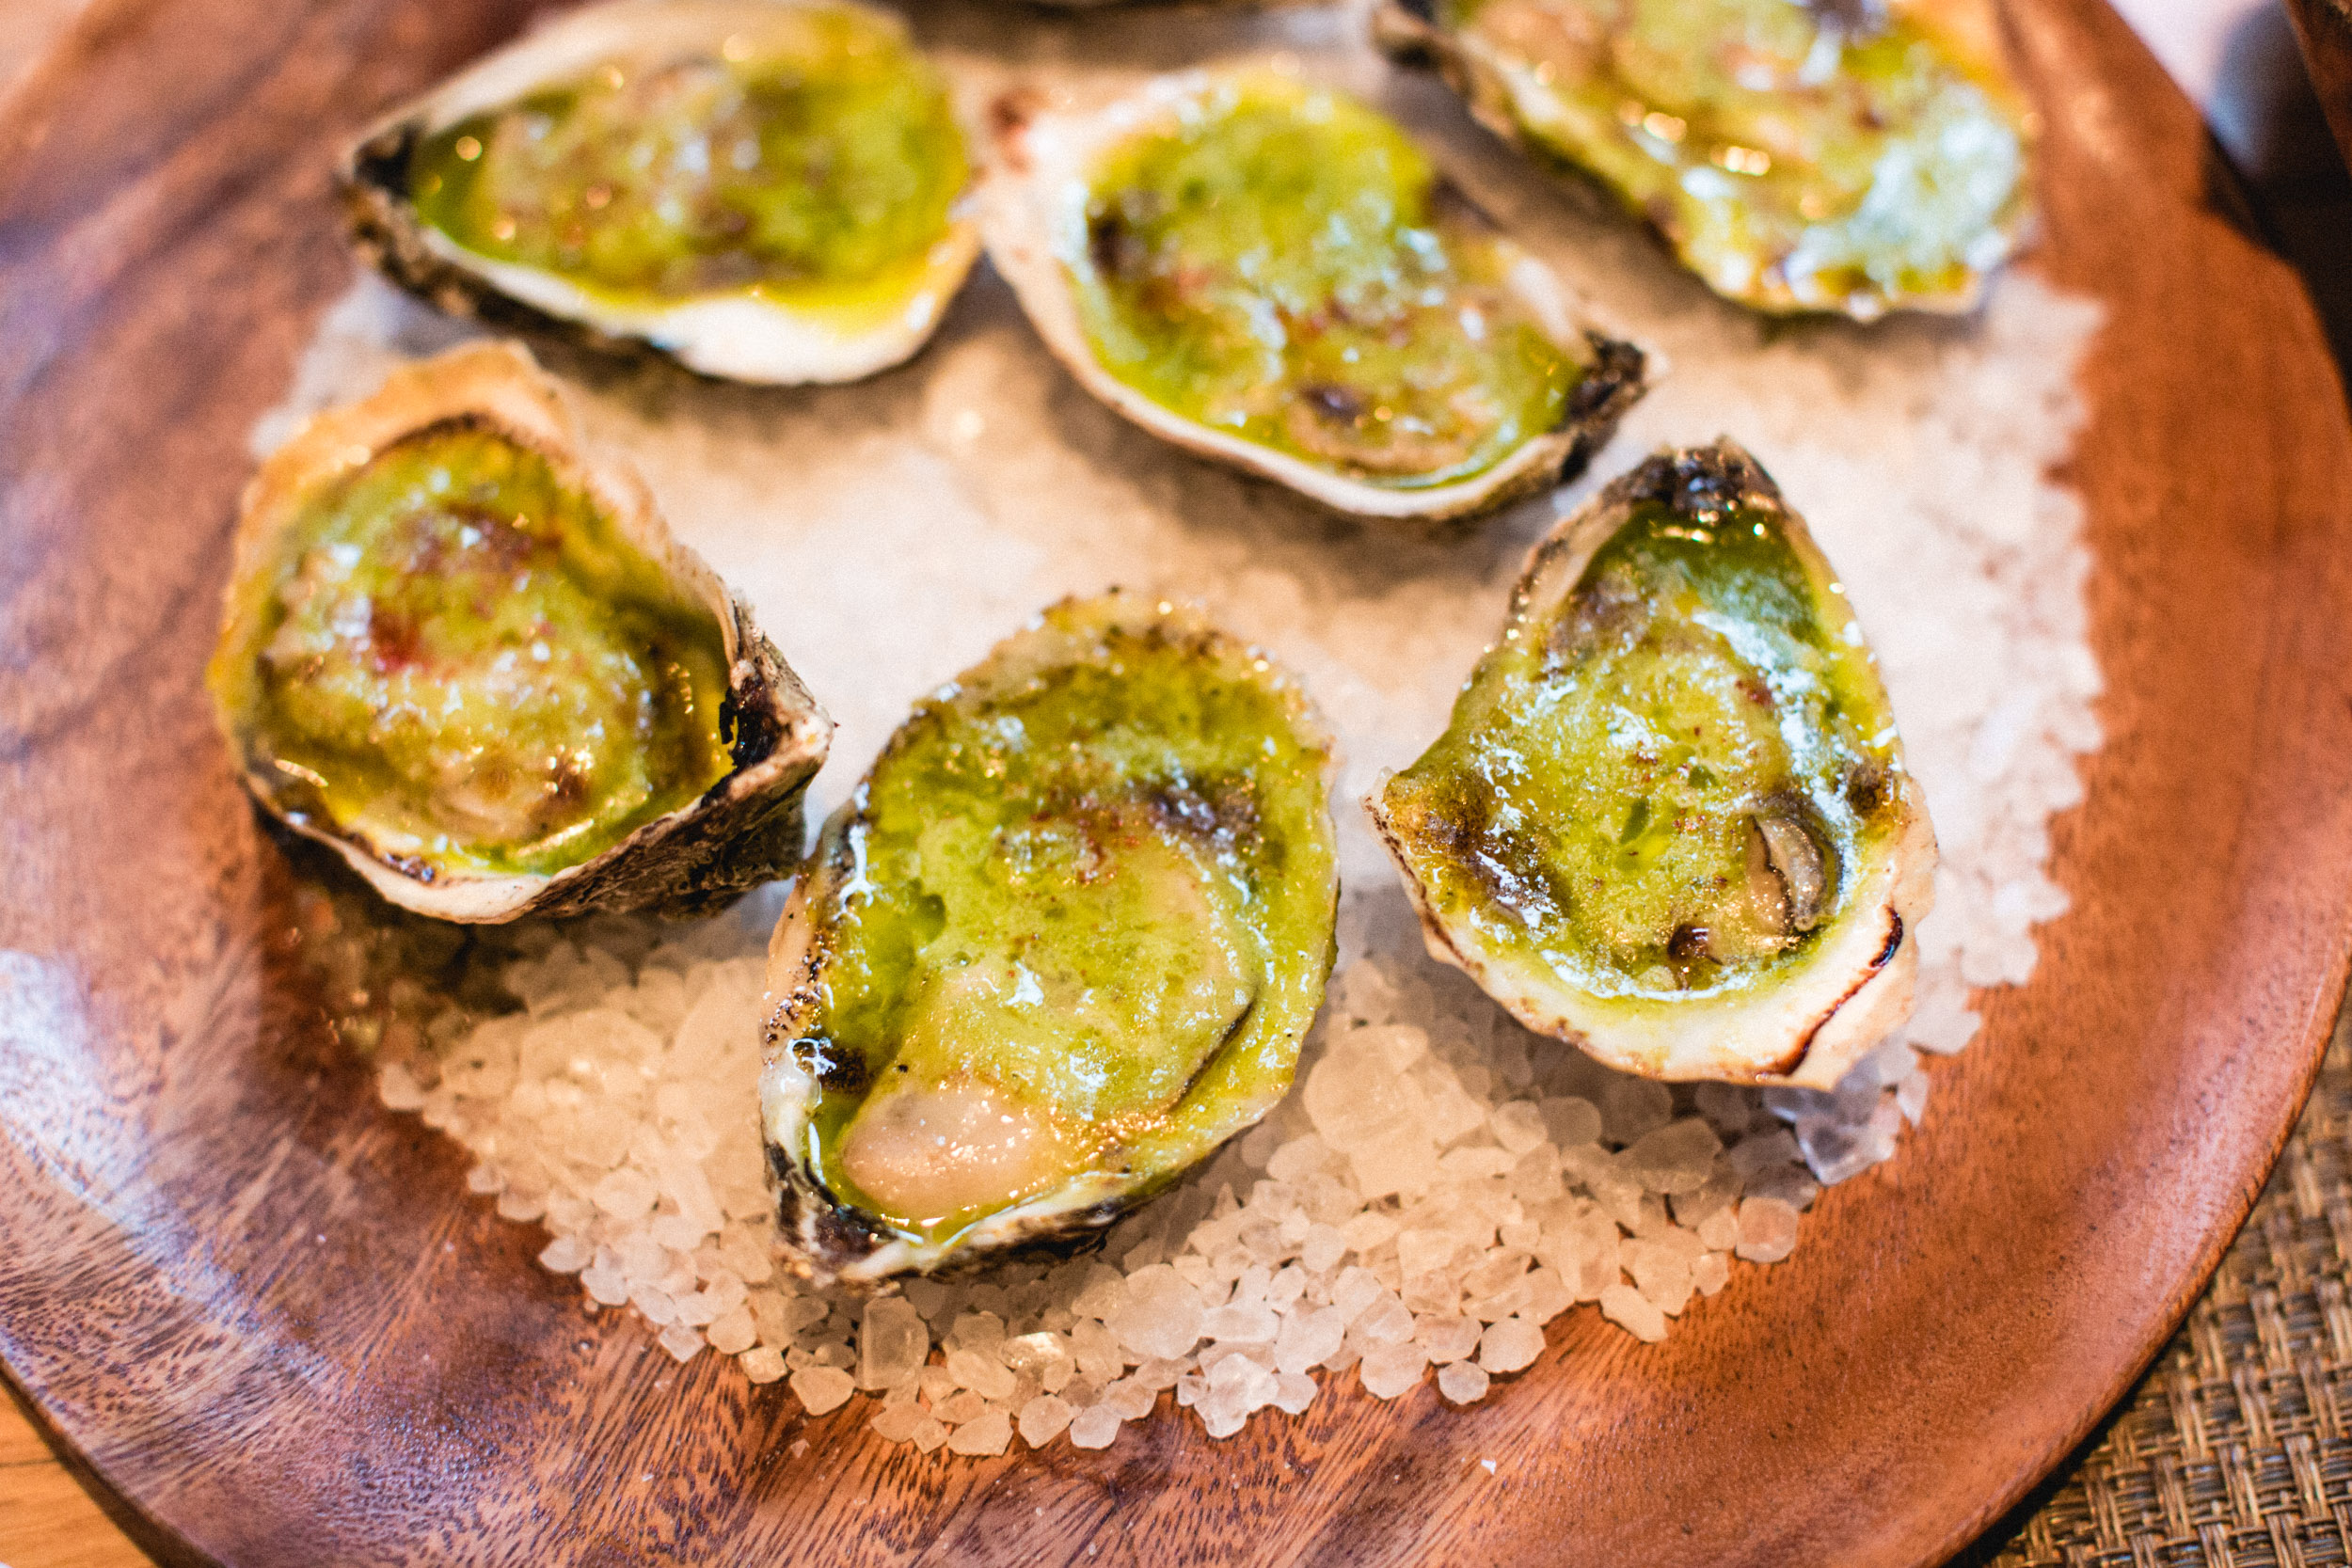 These wood-fired oysters... if I could only eat oysters one way, this would be it. I know, purists will not favor that comment.